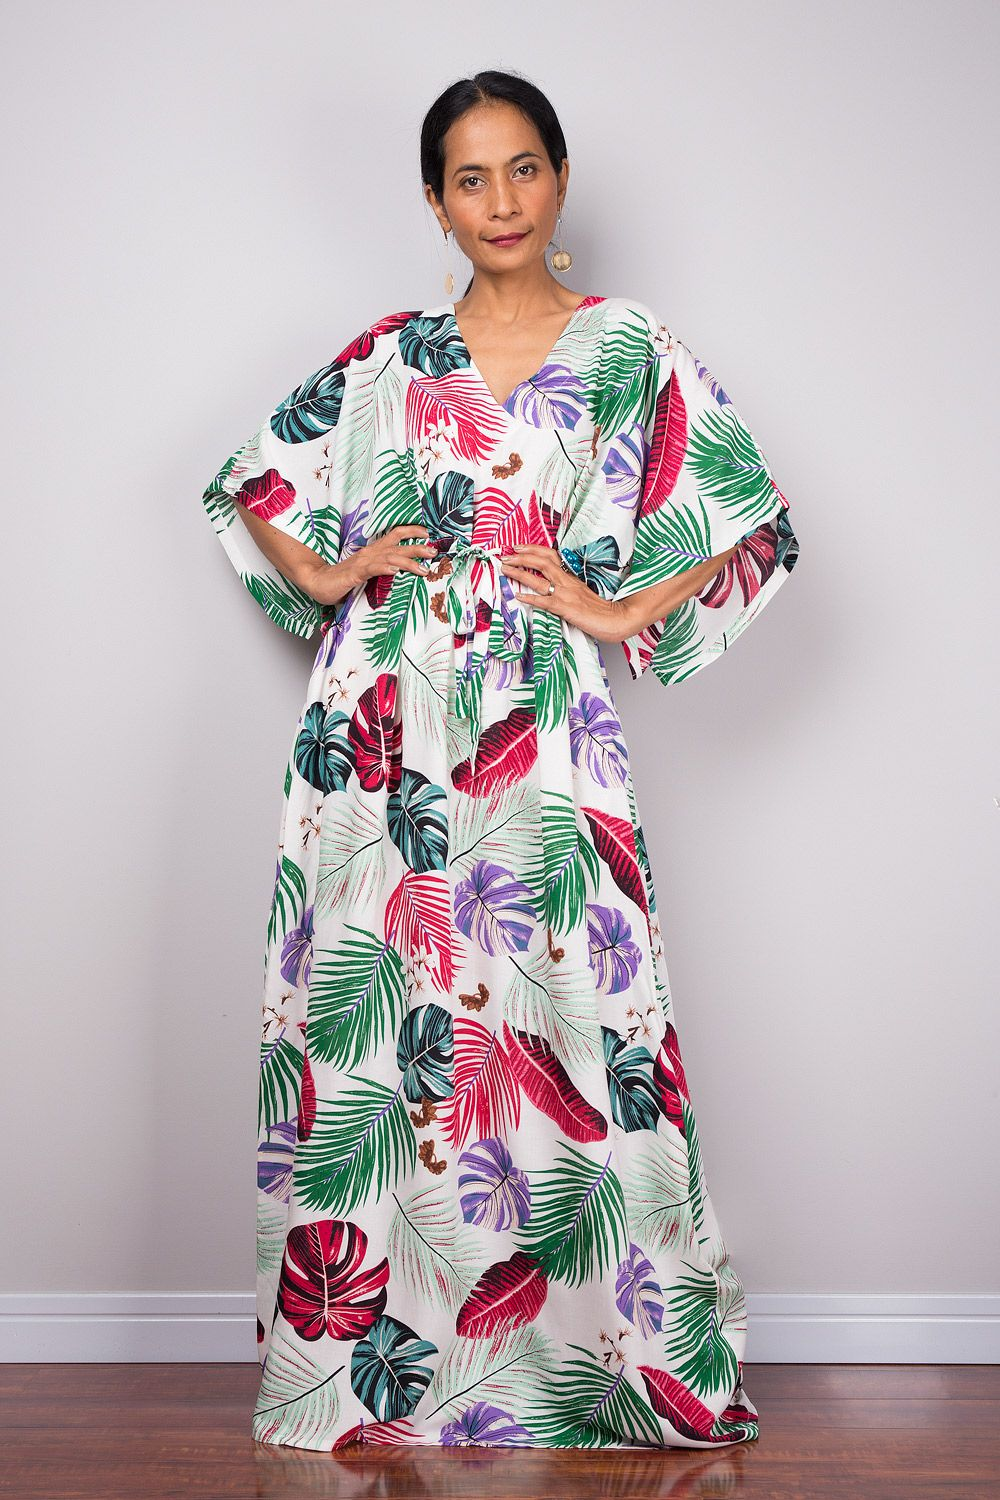 324d2c58dd73 Women S Affordable Fashion Websites. Bohemian chic leaf print kaftan dress   nuichan  tropical  shopping  handmade